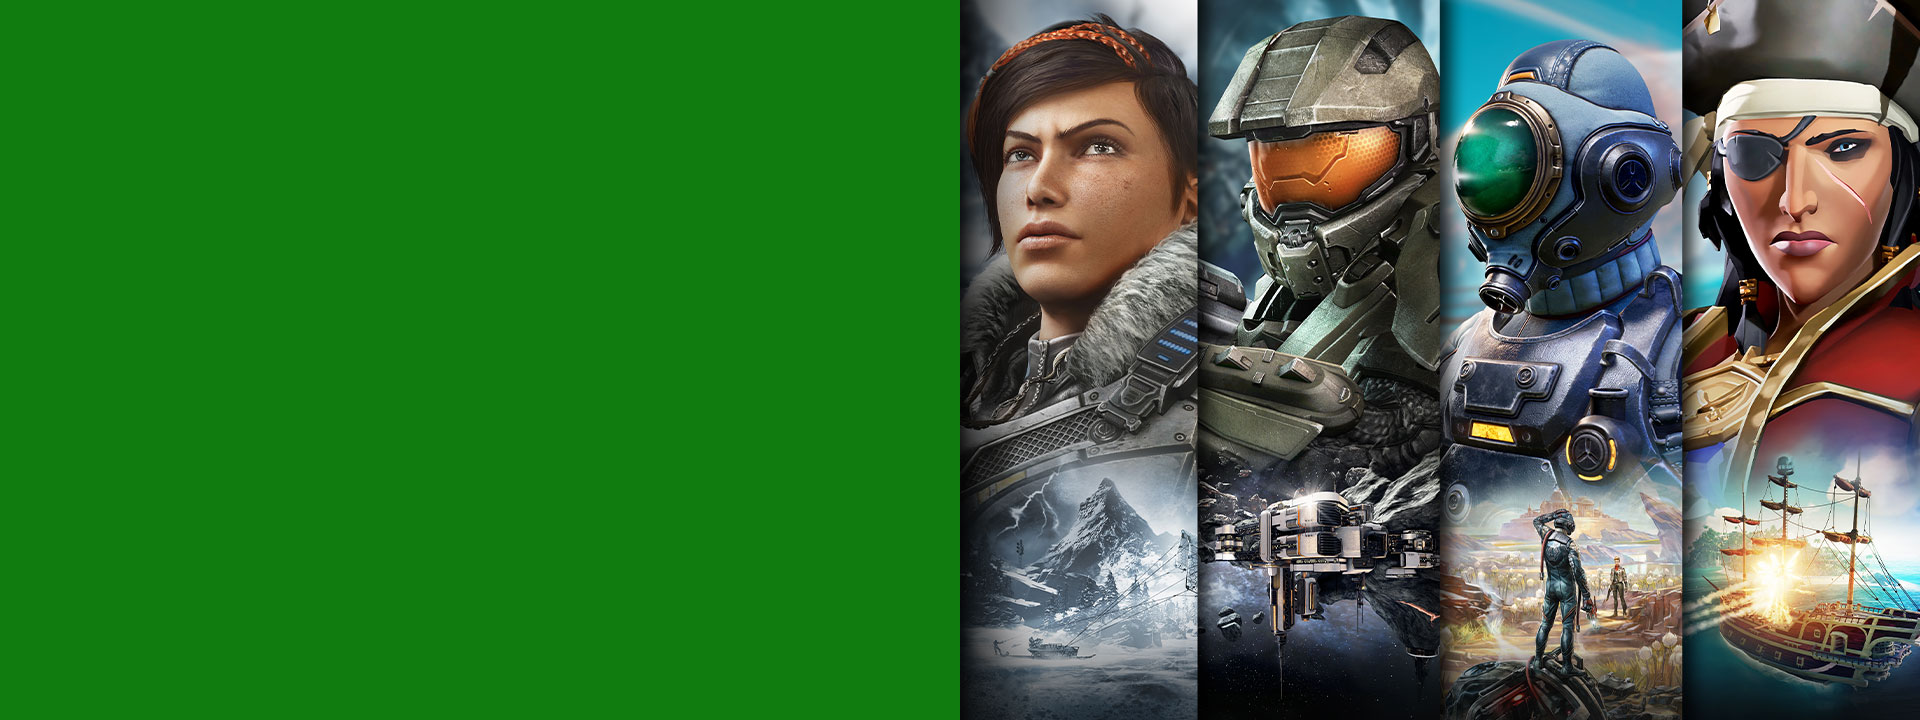 Xbox Game Pass personnages des jeux Gears 5, Halo, The Outer Worlds et Sea of Thieves.